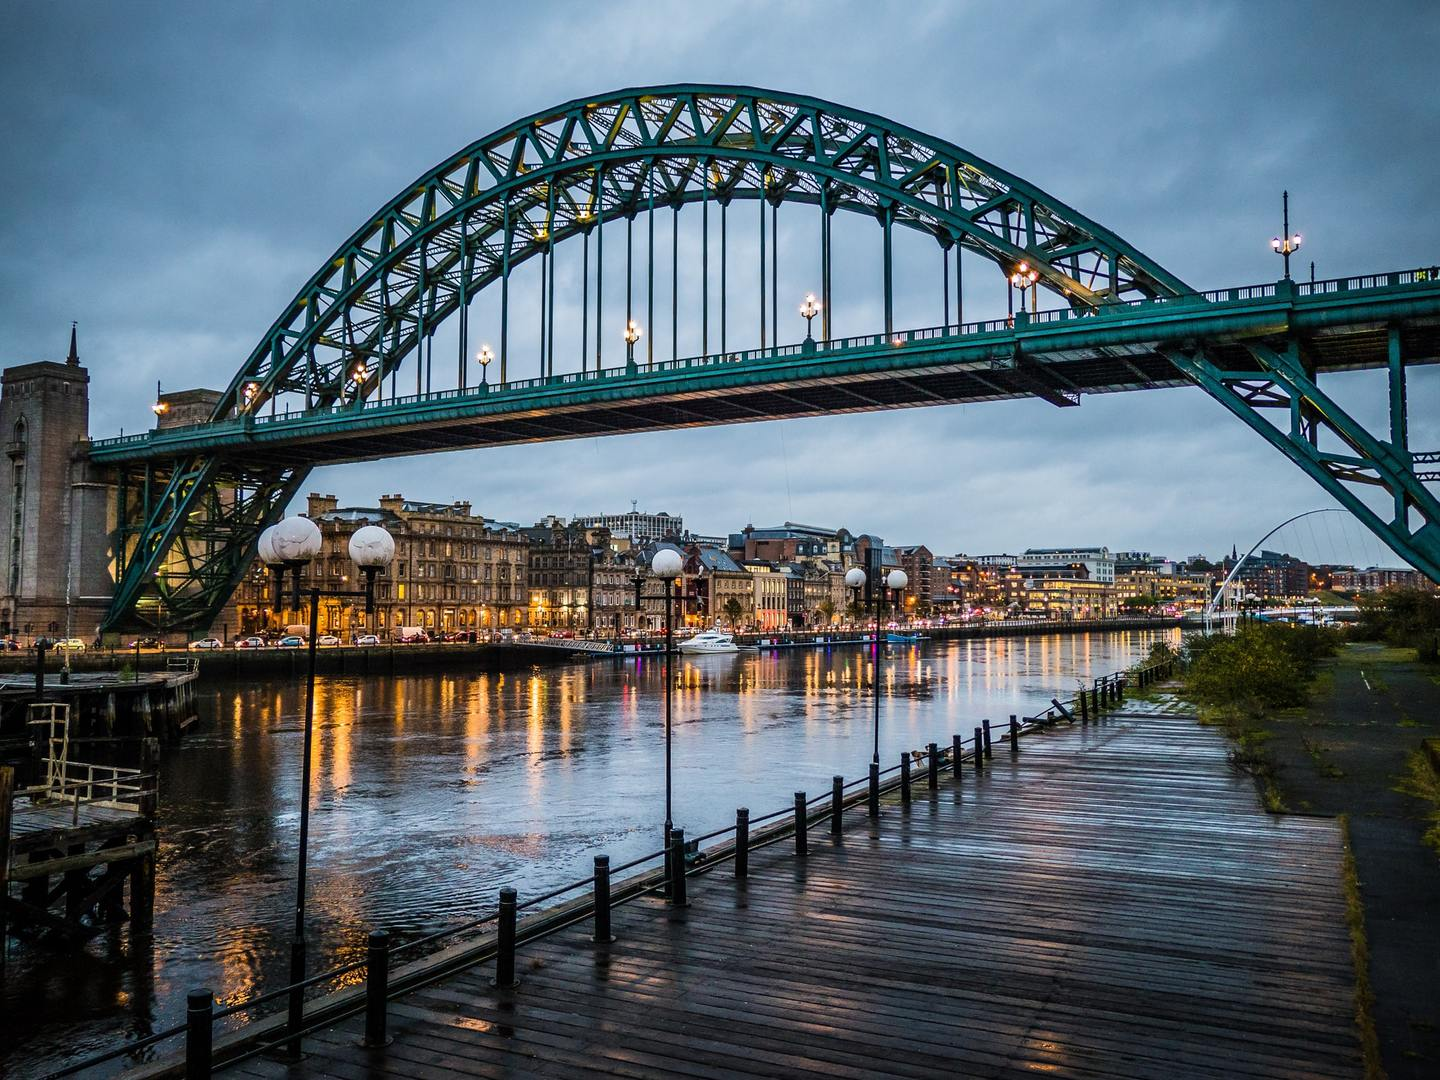 View of Newcastle Upon Tyne and the Tyne Bridge from the Quay